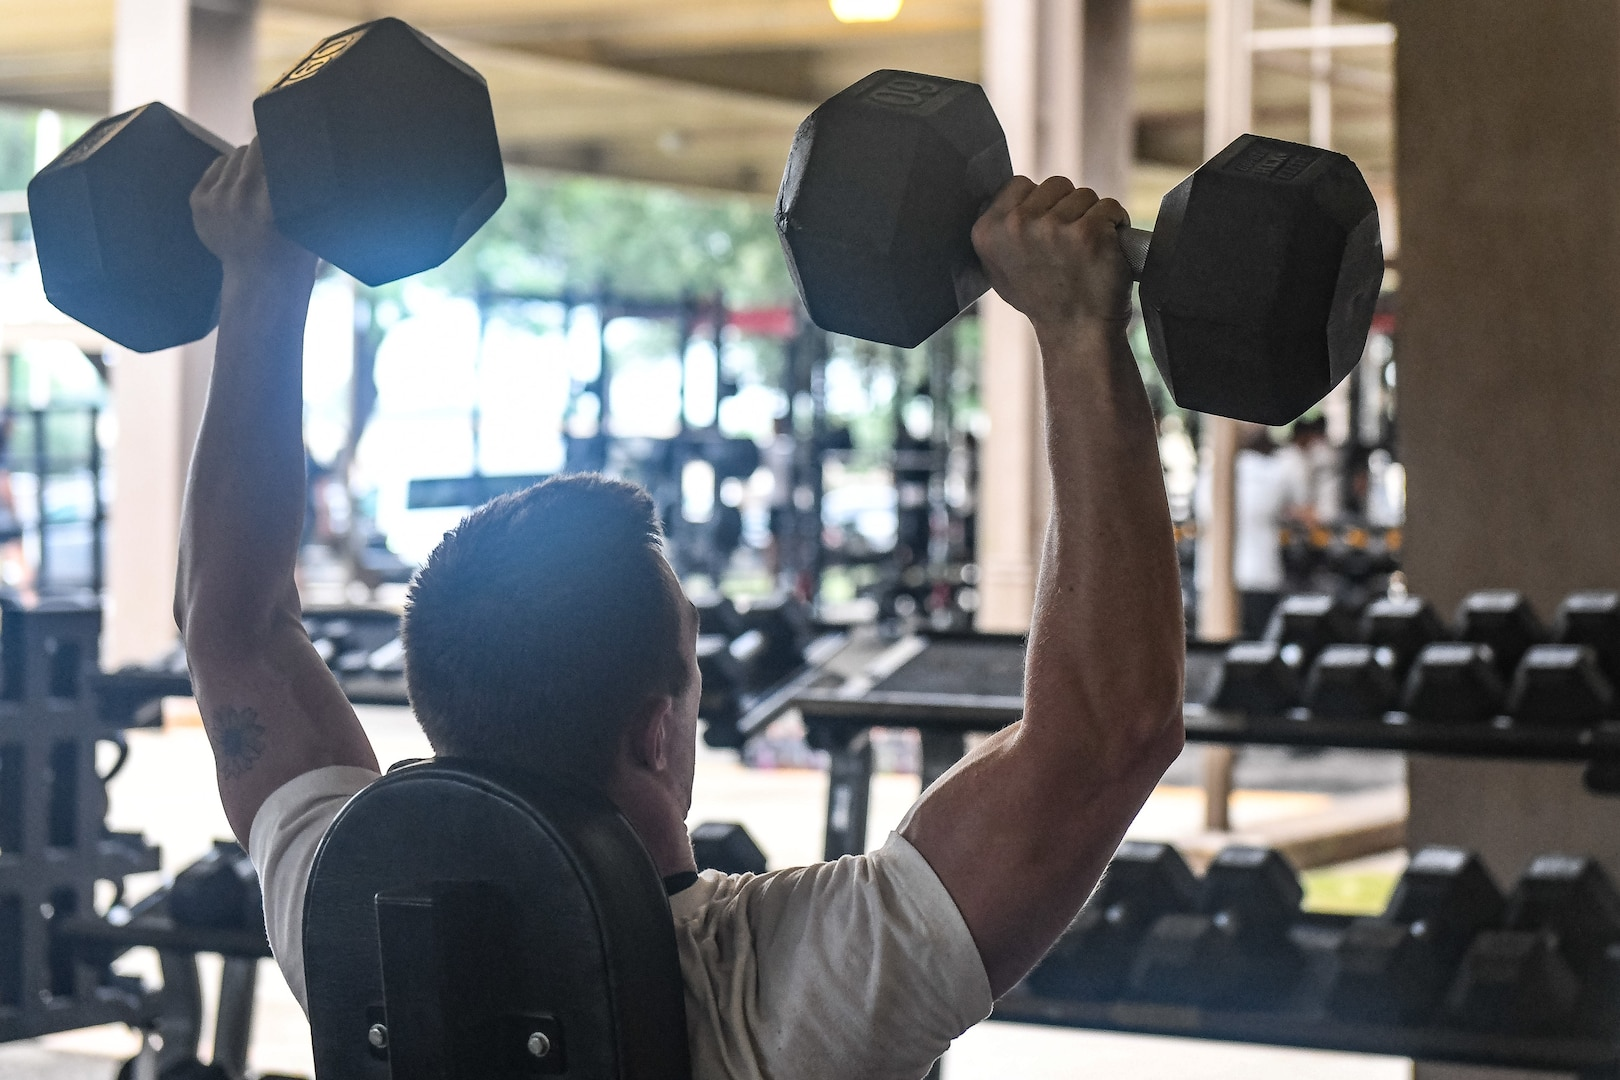 Training student lifting dumbbells over his head.